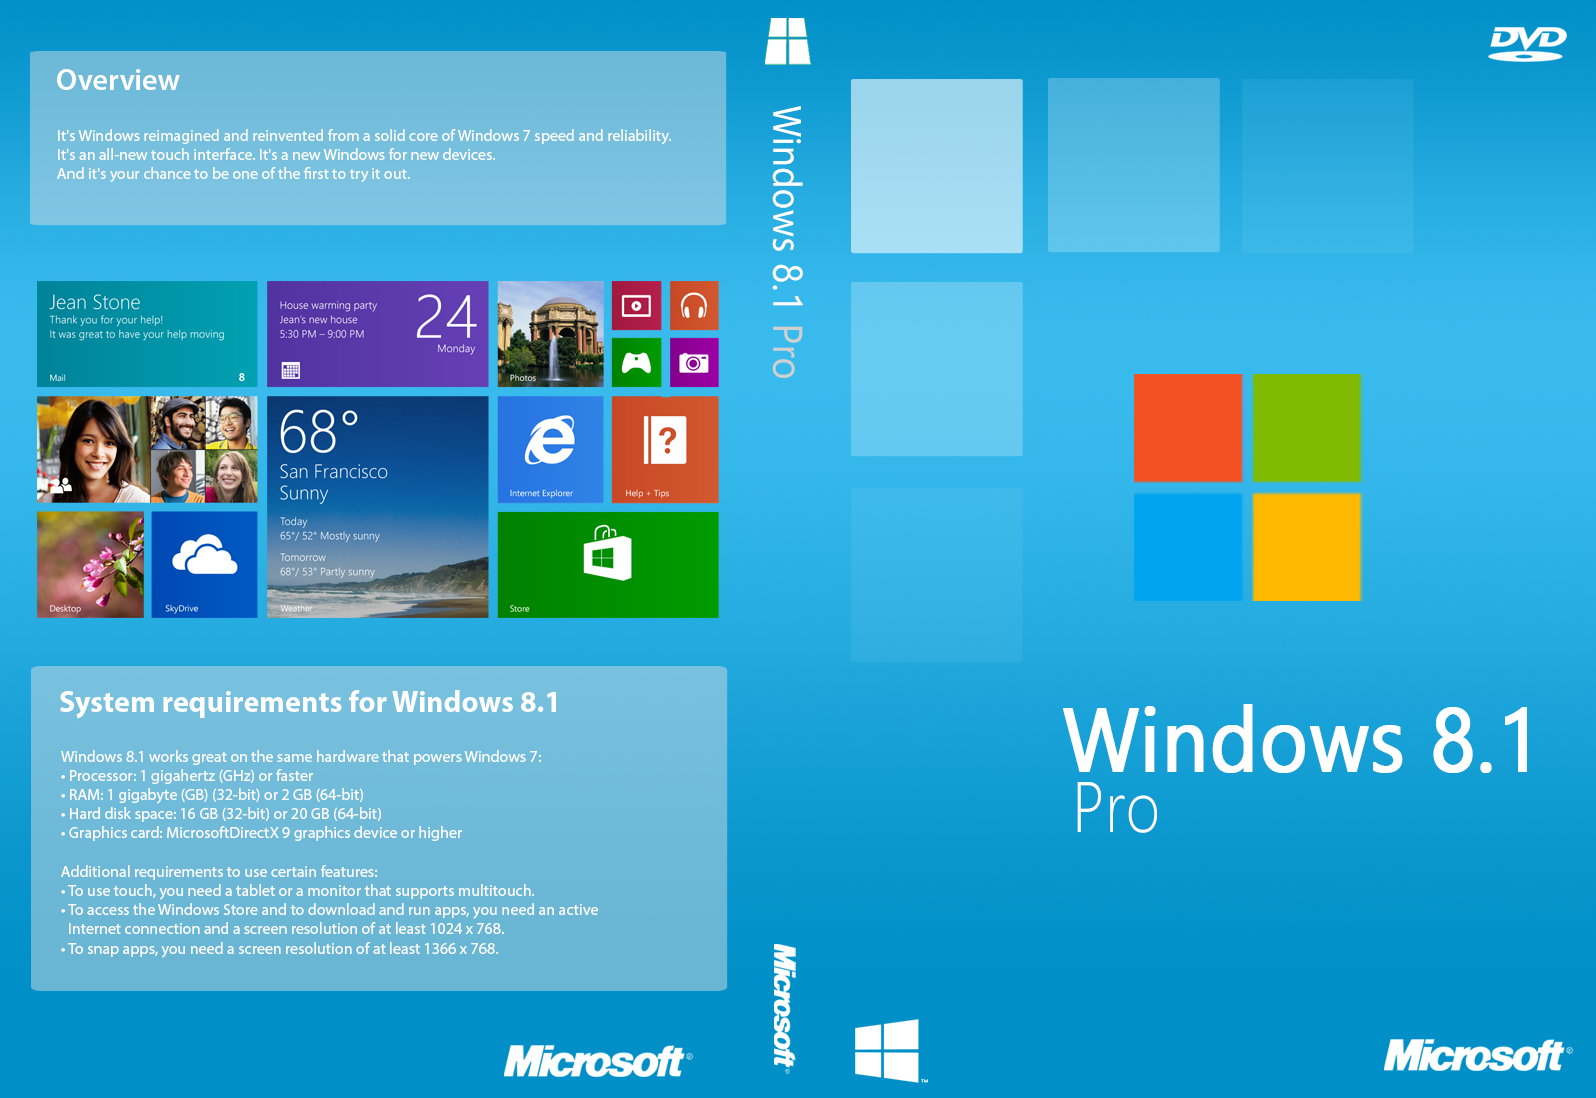 How to download windows 8 1 pro iso legally without for Window 8 1 pro product key